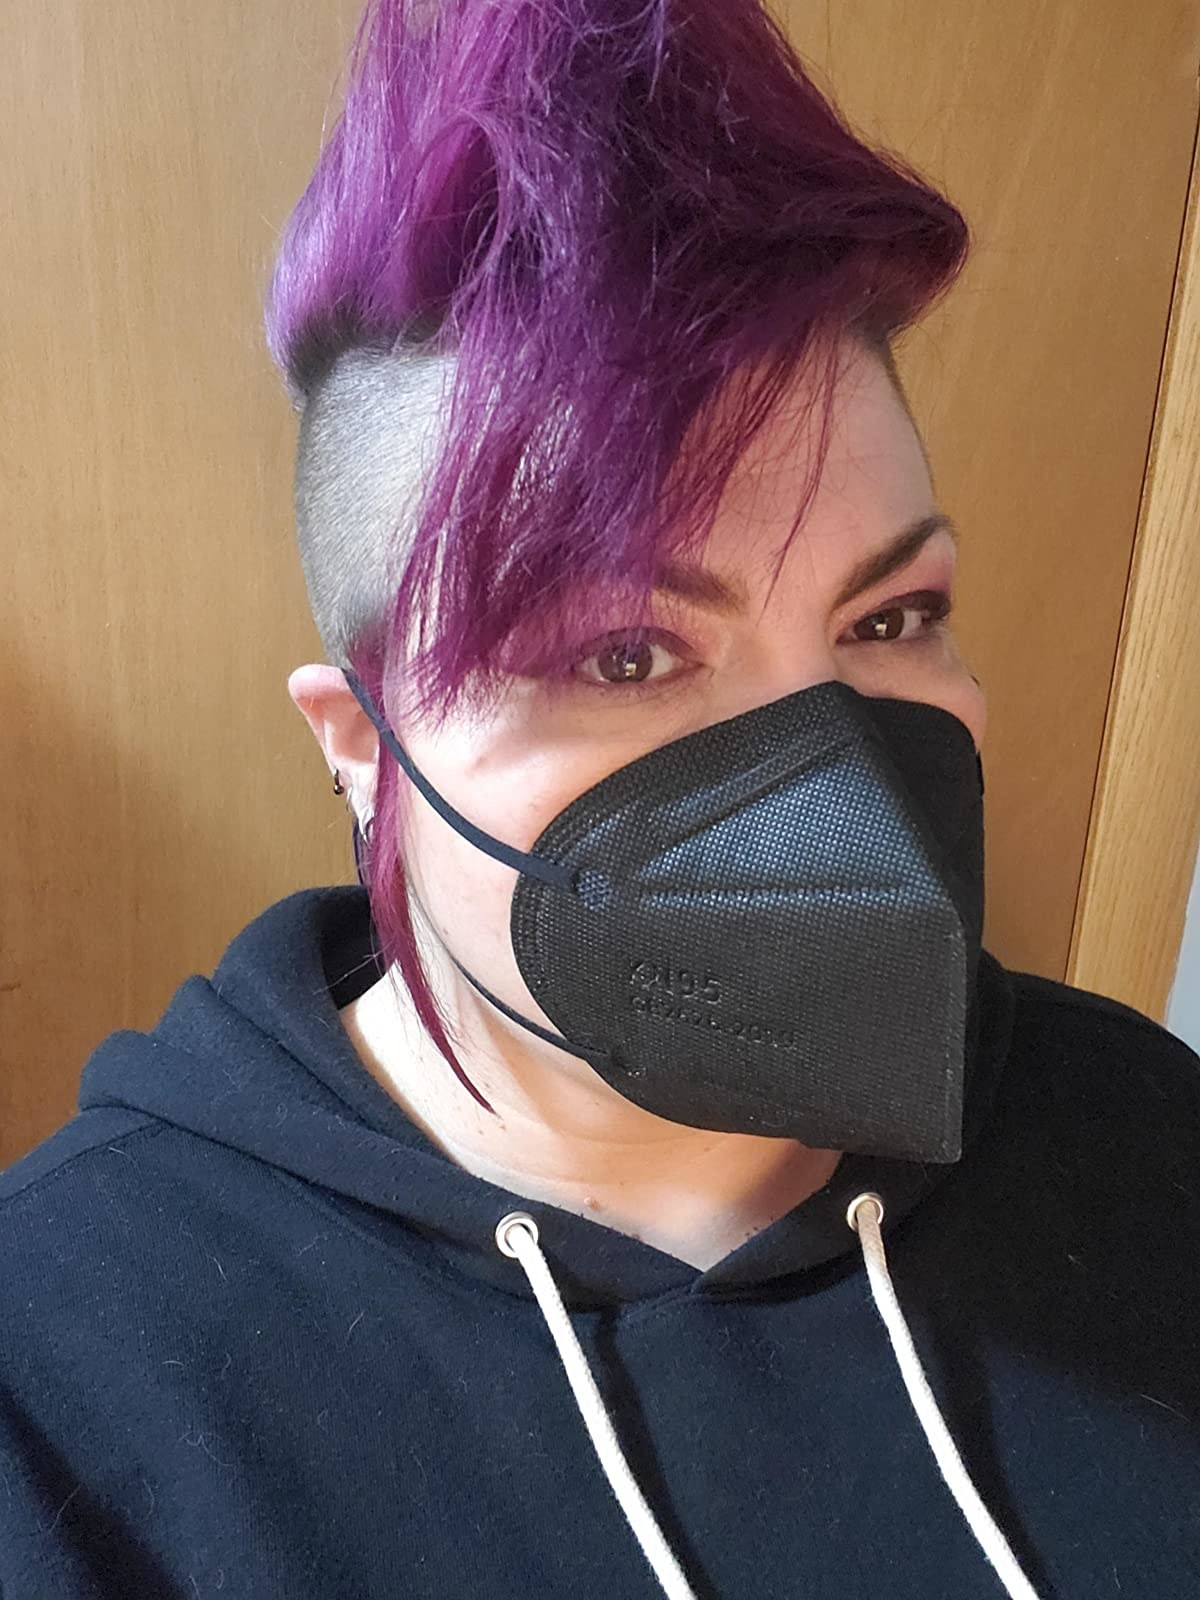 reviewer with a purple mohawk wearing the black KN95 face mask